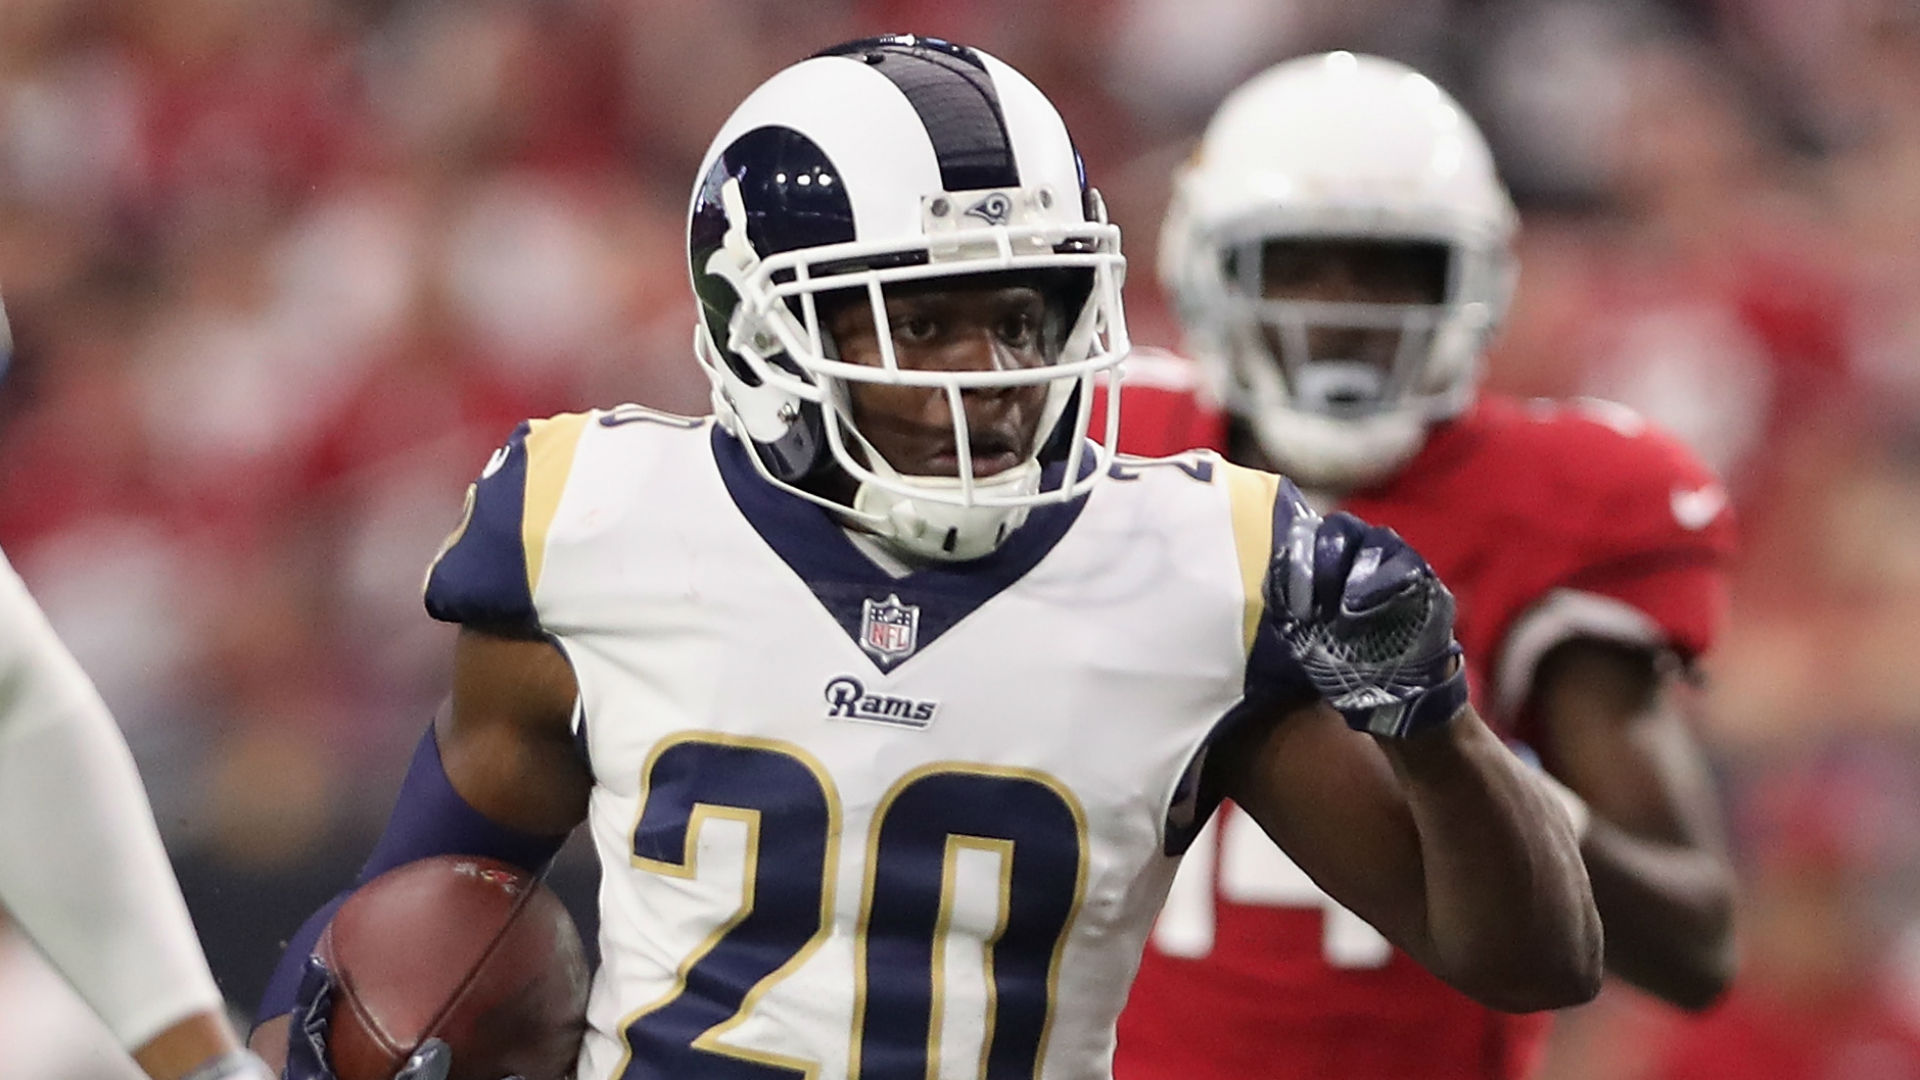 Rams place franchise tag on Lamarcus Joyner